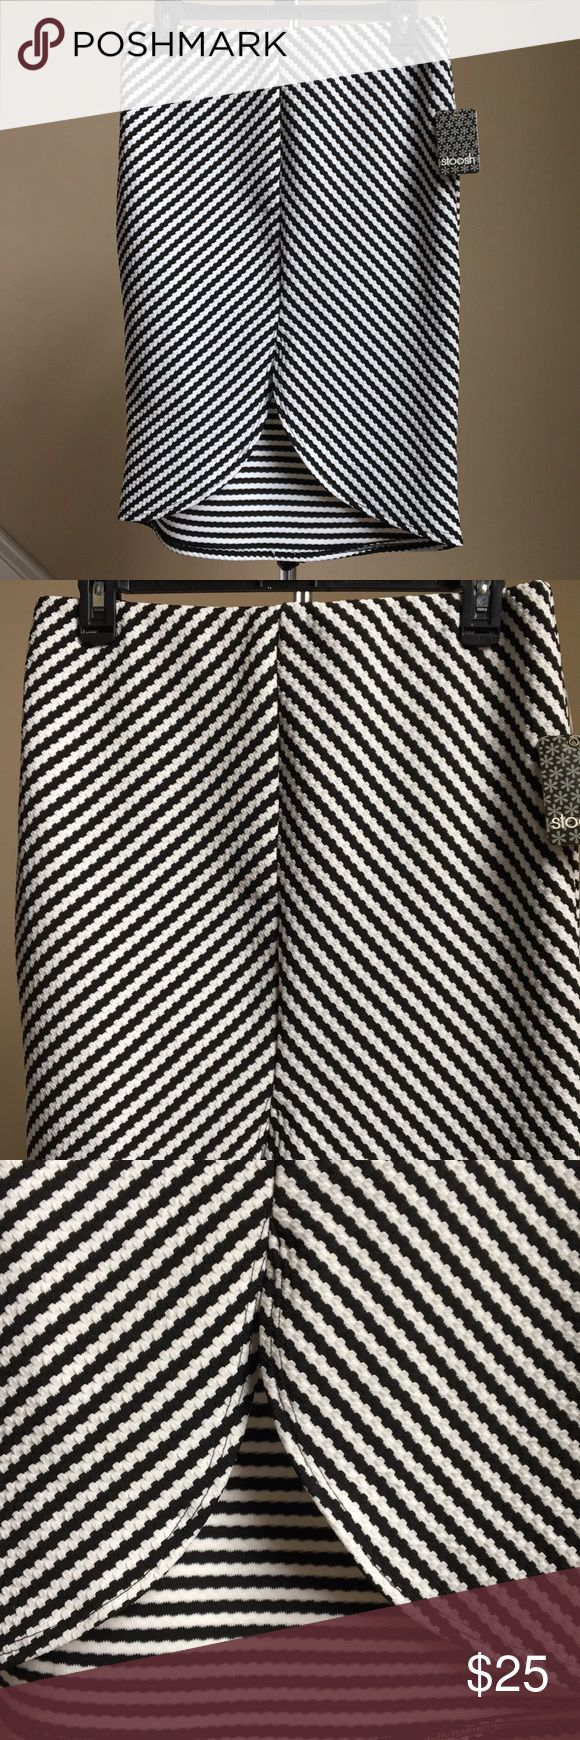 🎀 Beautiful Stoosh Skirt Beautiful tulip front black and ivory skirt by Stoosh. 94% Polyester, 6% Soandex. Made in USA. Machine wash cold. 🚨Bundle and get 15% off! 🚨 Stoosh Skirts